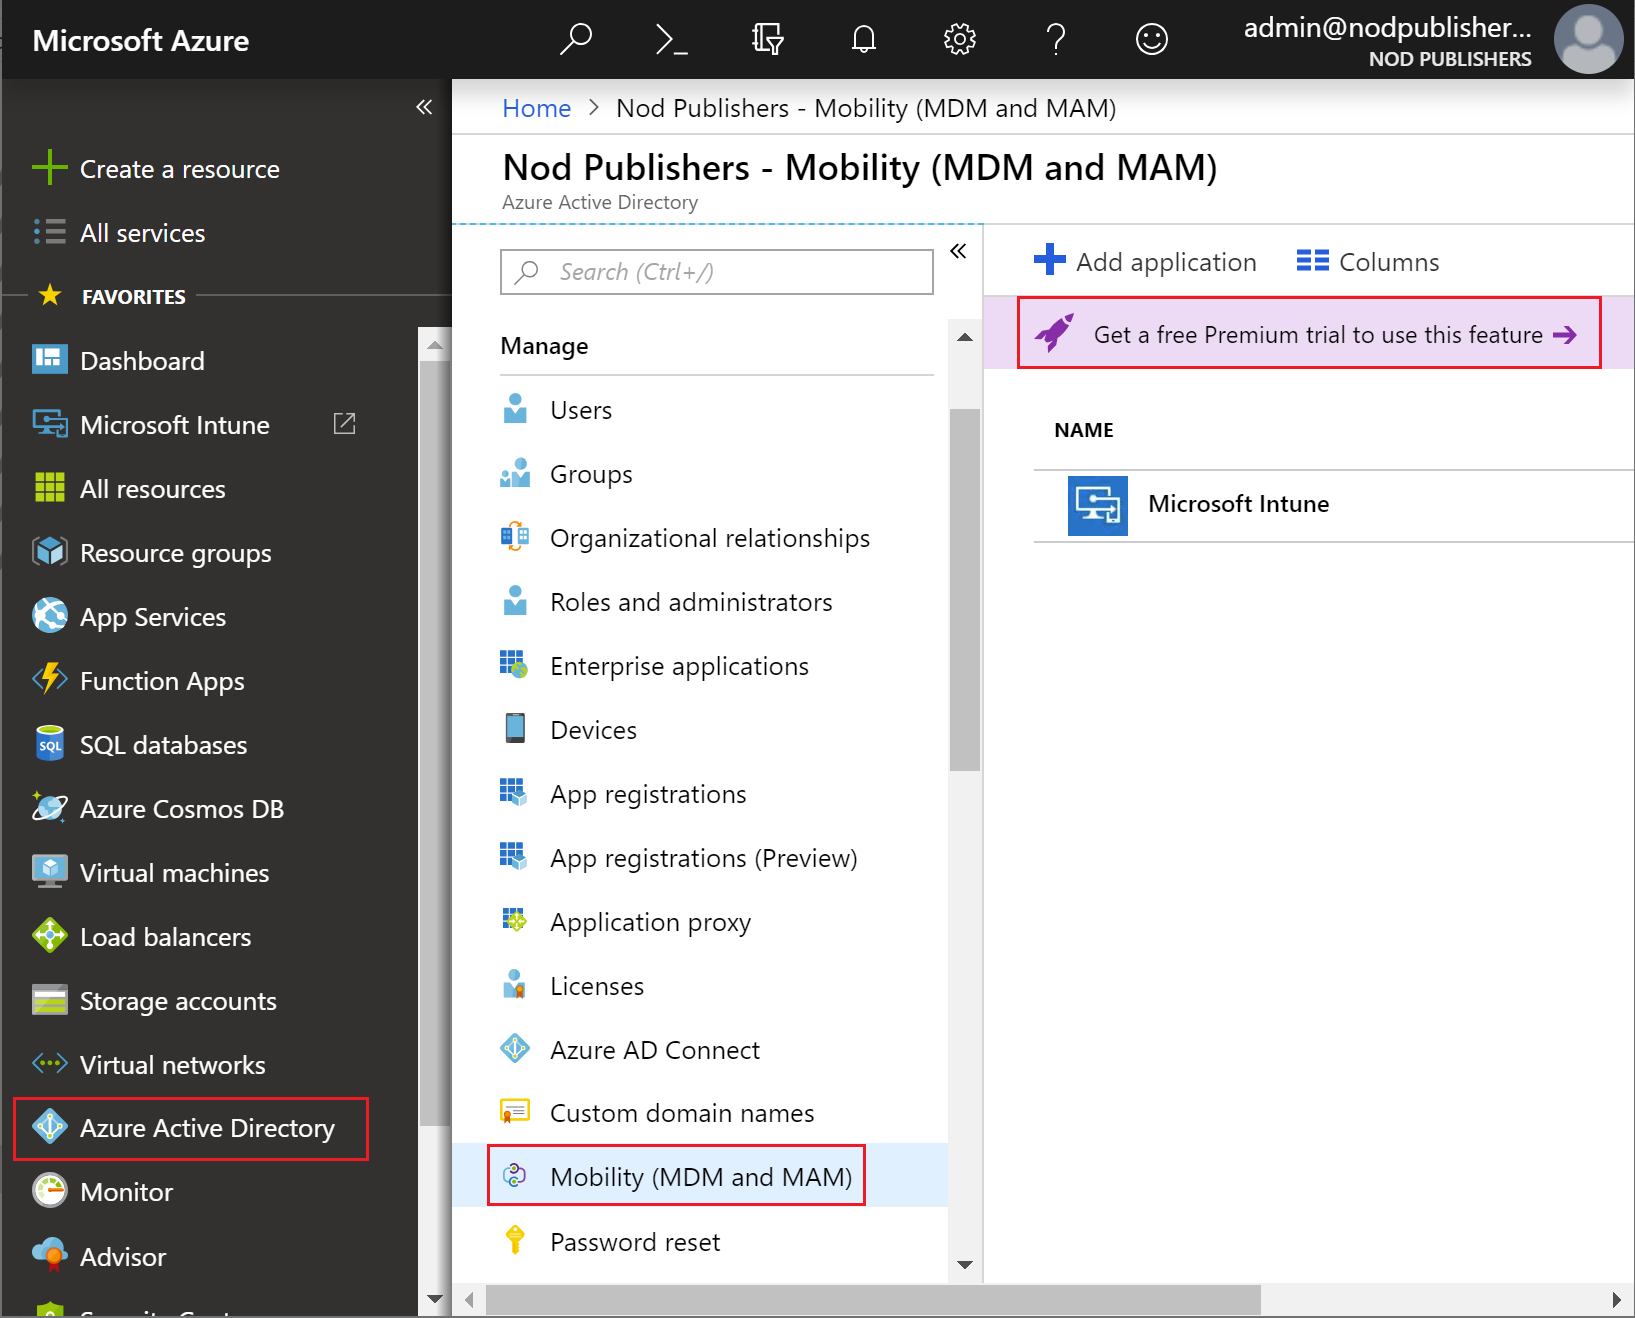 Select the Azure Active Directory free Premium trial